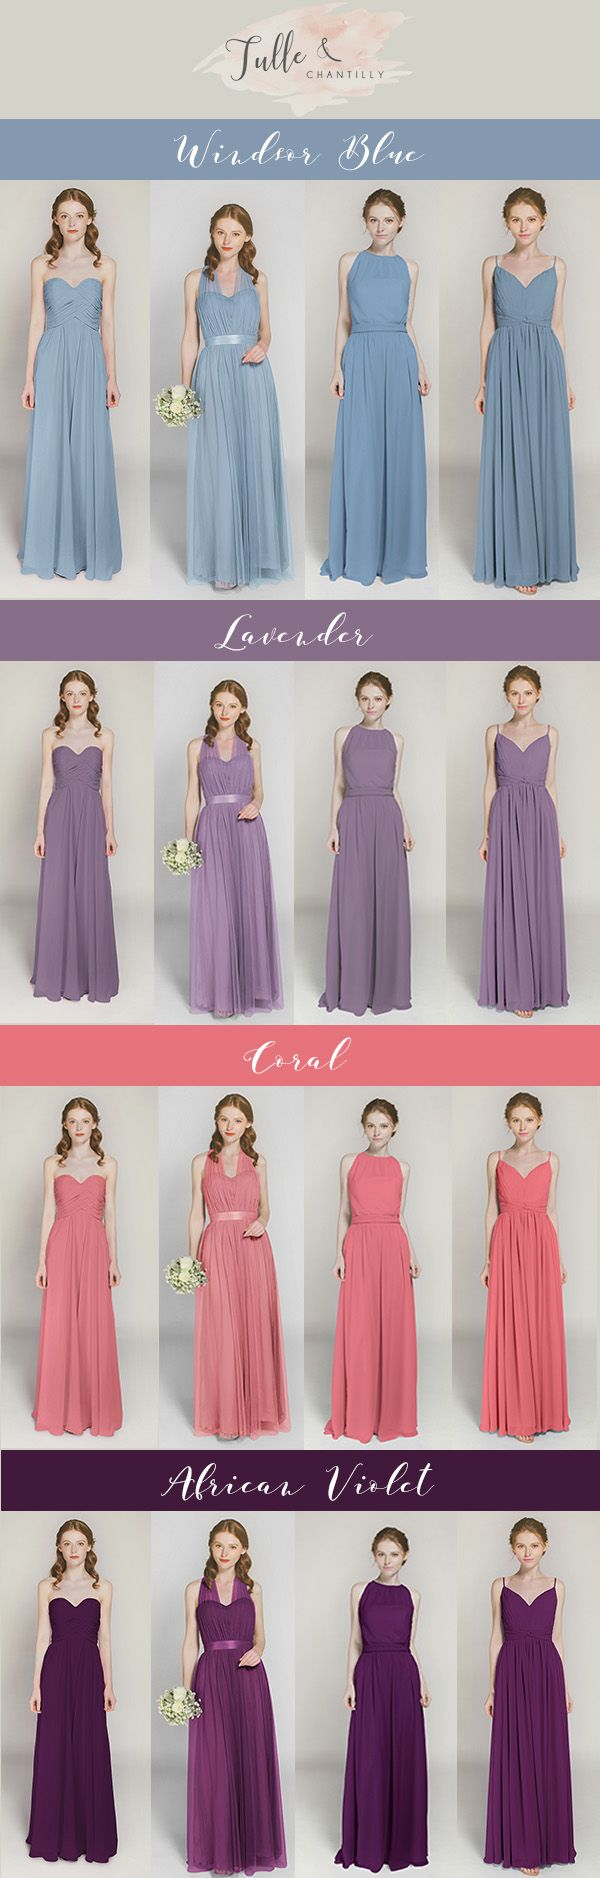 2017 trending bridesmaid dresses from tulle and chantilly